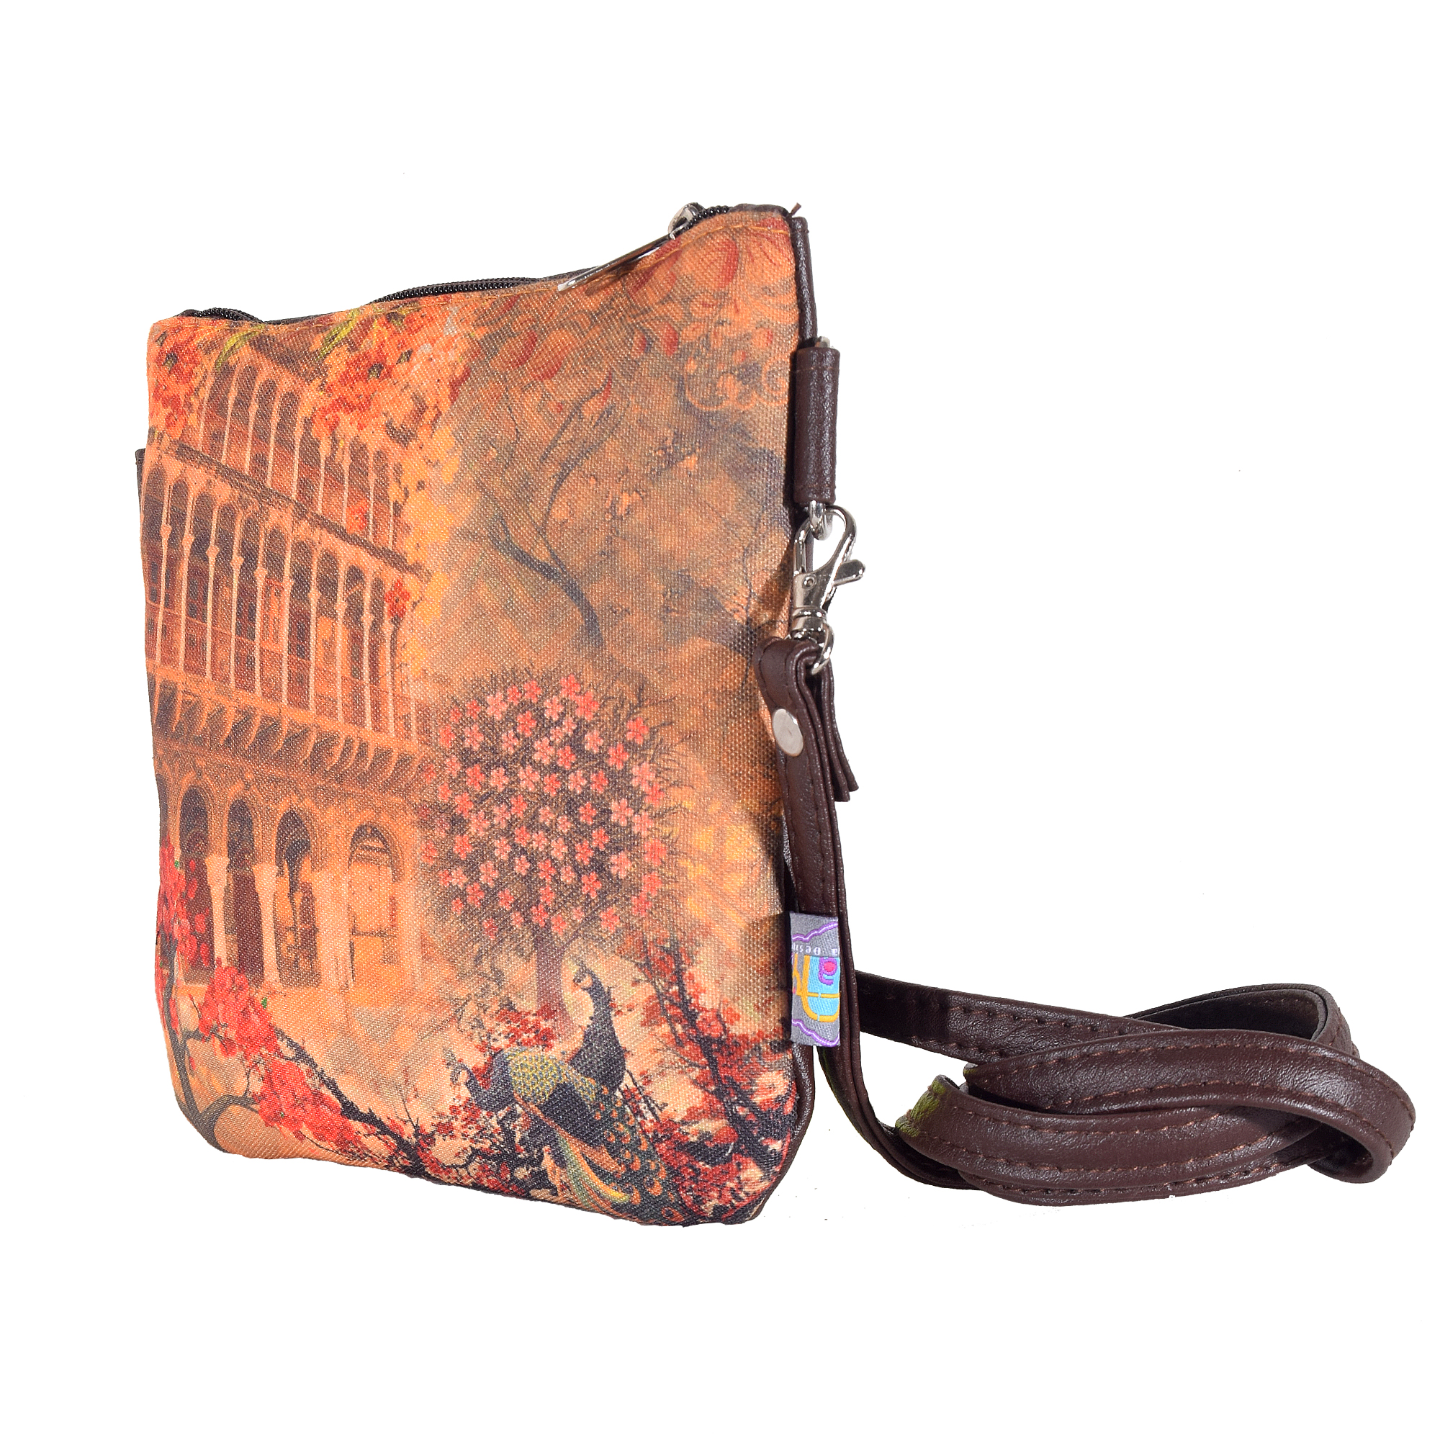 Fort and Floral Small Sling Bag